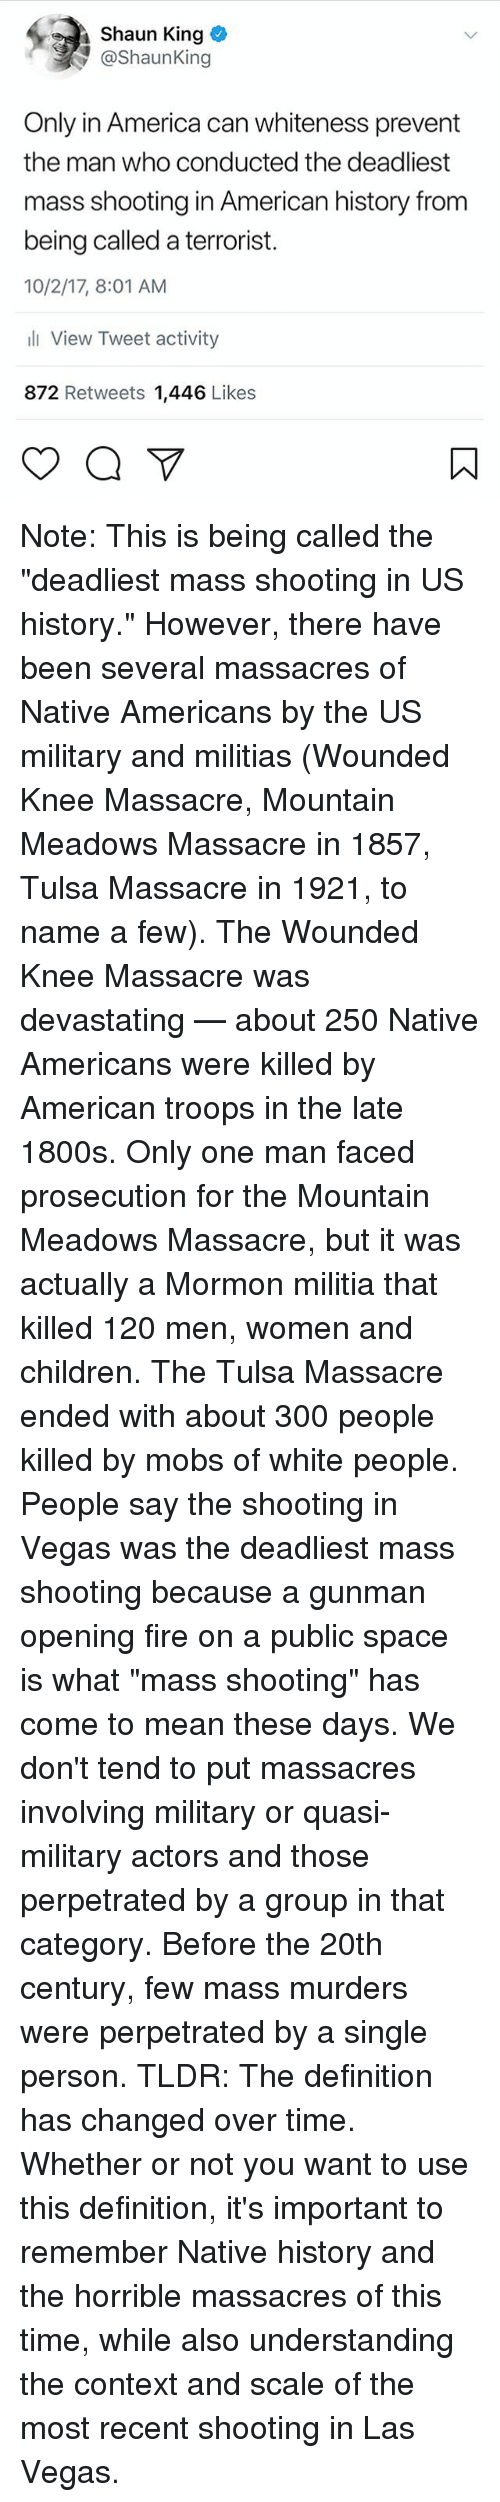 "America, Children, and Fire: Shaun King  @ShaunKing  Only in America can whiteness prevent  the man who conducted the deadliest  mass shooting in American history from  being called a terrorist.  10/2/17, 8:01 AM  li View Tweet activity  872 Retweets 1,446 Likes Note: This is being called the ""deadliest mass shooting in US history."" However, there have been several massacres of Native Americans by the US military and militias (Wounded Knee Massacre, Mountain Meadows Massacre in 1857, Tulsa Massacre in 1921, to name a few). The Wounded Knee Massacre was devastating — about 250 Native Americans were killed by American troops in the late 1800s. Only one man faced prosecution for the Mountain Meadows Massacre, but it was actually a Mormon militia that killed 120 men, women and children. The Tulsa Massacre ended with about 300 people killed by mobs of white people. People say the shooting in Vegas was the deadliest mass shooting because a gunman opening fire on a public space is what ""mass shooting"" has come to mean these days. We don't tend to put massacres involving military or quasi-military actors and those perpetrated by a group in that category. Before the 20th century, few mass murders were perpetrated by a single person. TLDR: The definition has changed over time. Whether or not you want to use this definition, it's important to remember Native history and the horrible massacres of this time, while also understanding the context and scale of the most recent shooting in Las Vegas."